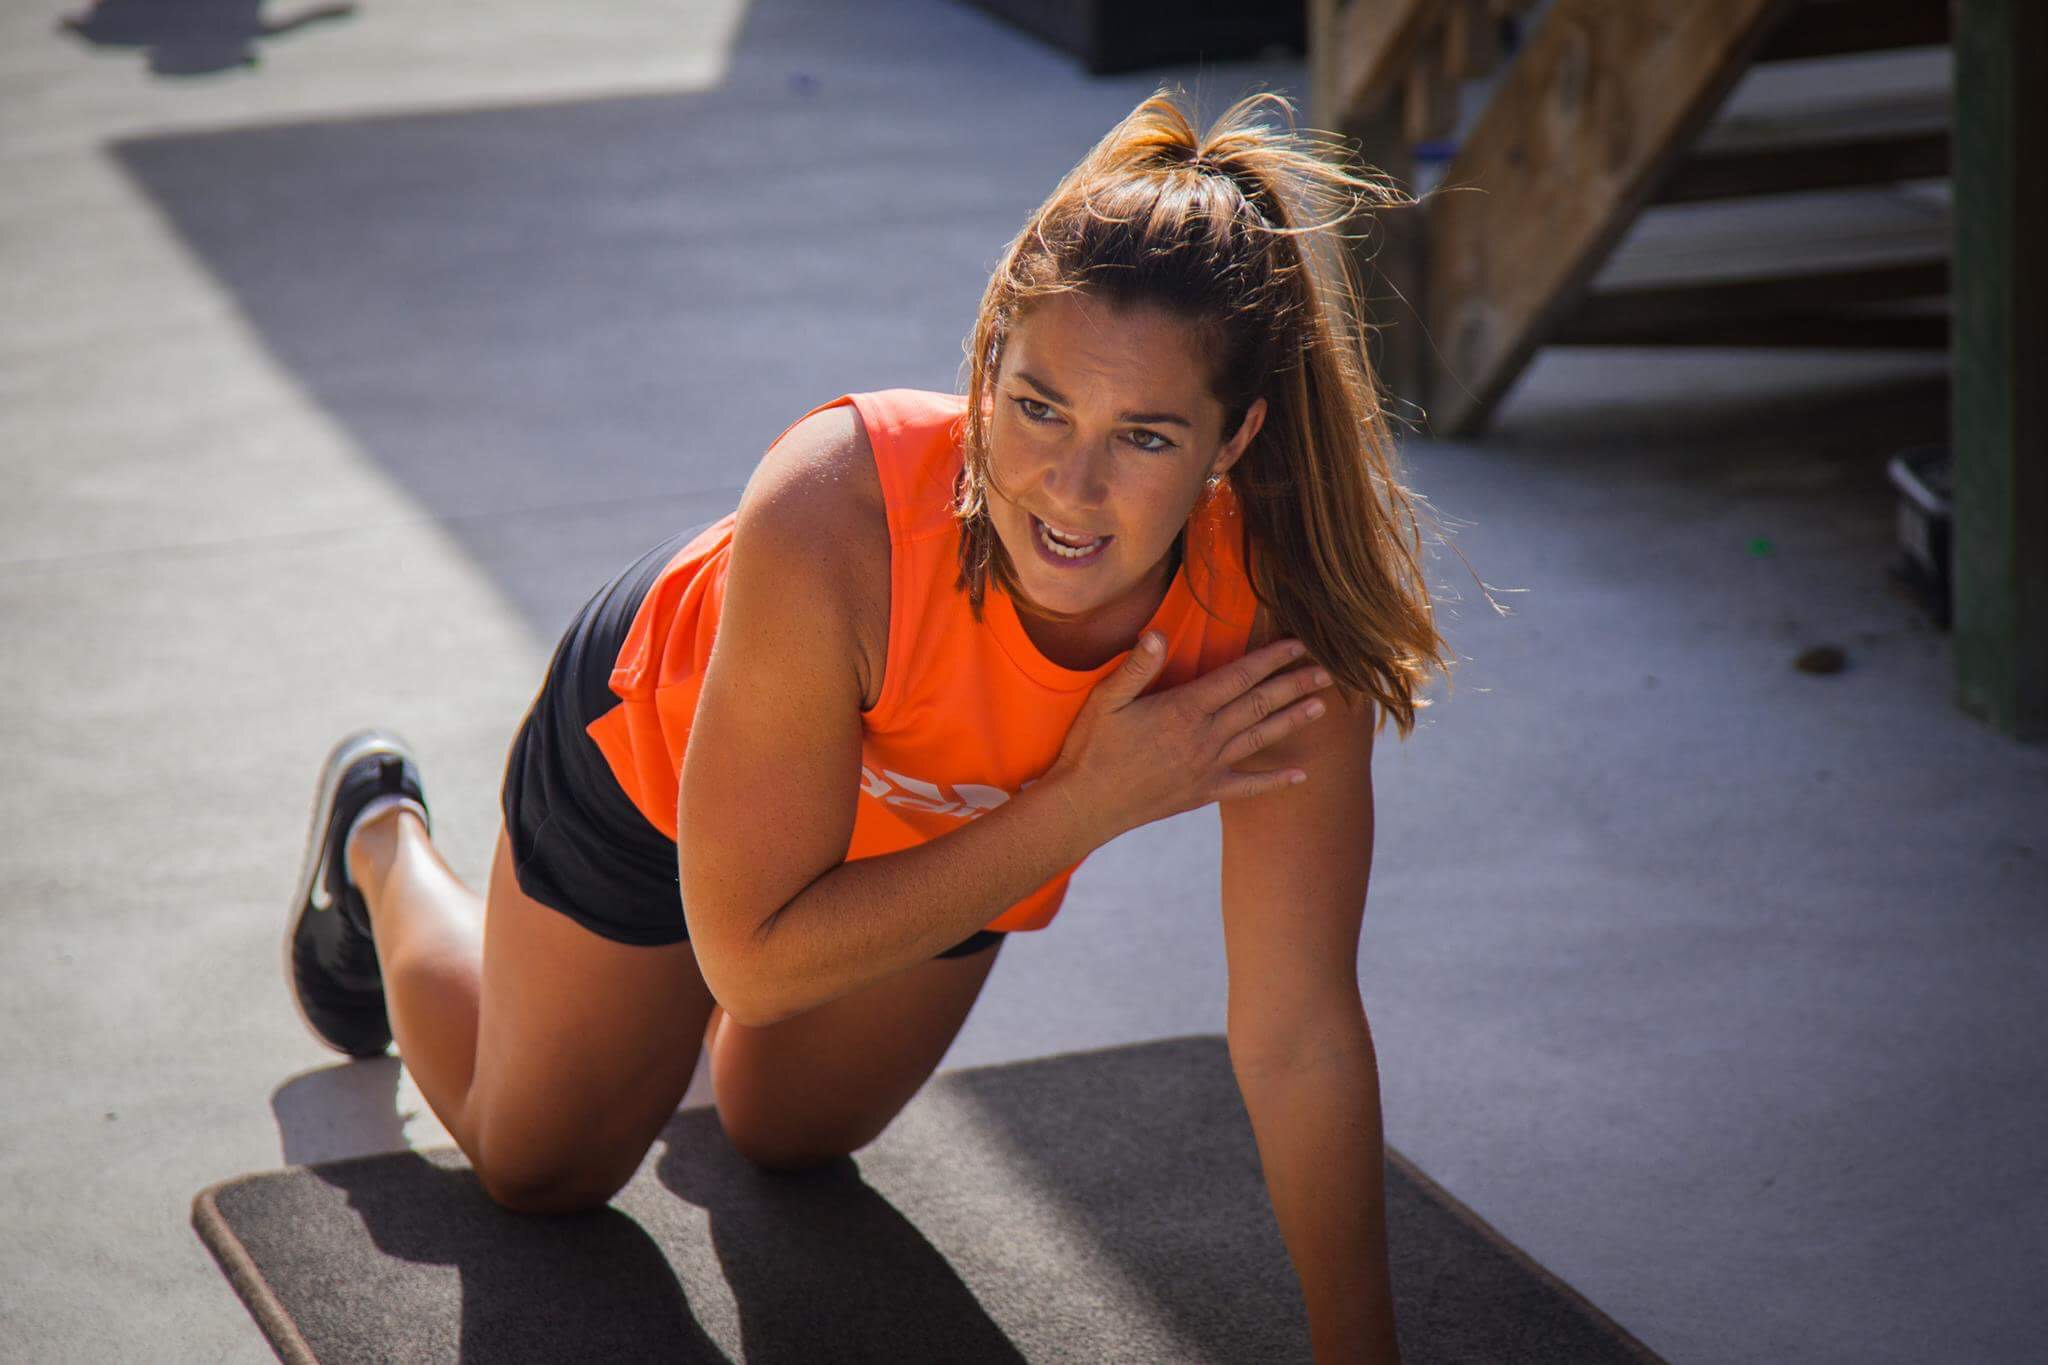 what is hiit? -